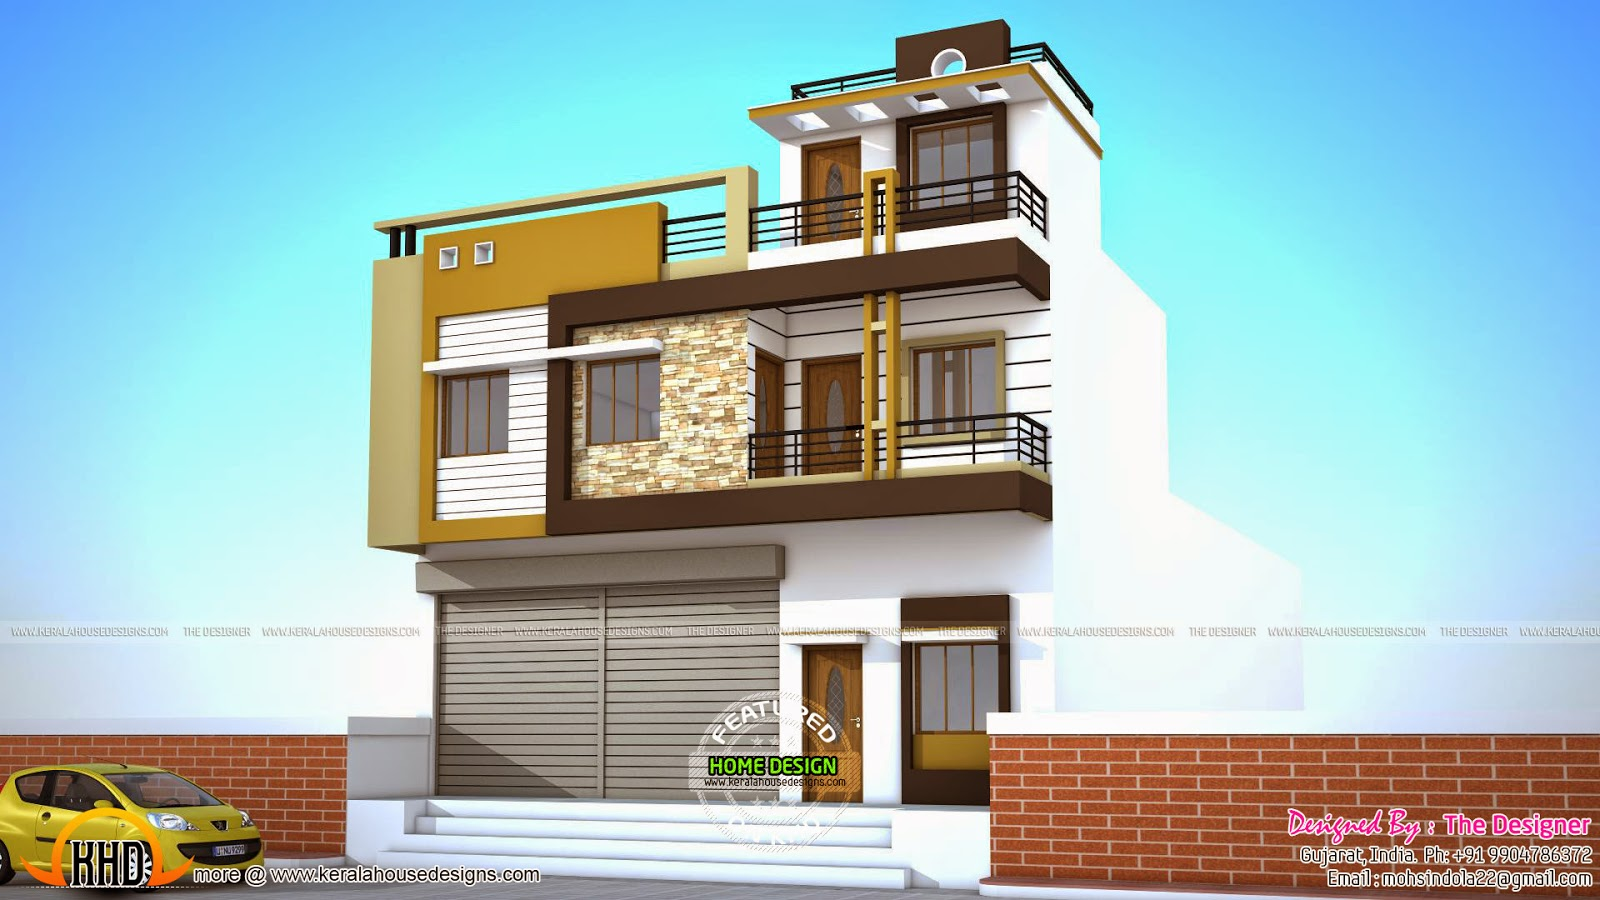 2 house plans with shops on ground floor kerala home for Home plans and designs